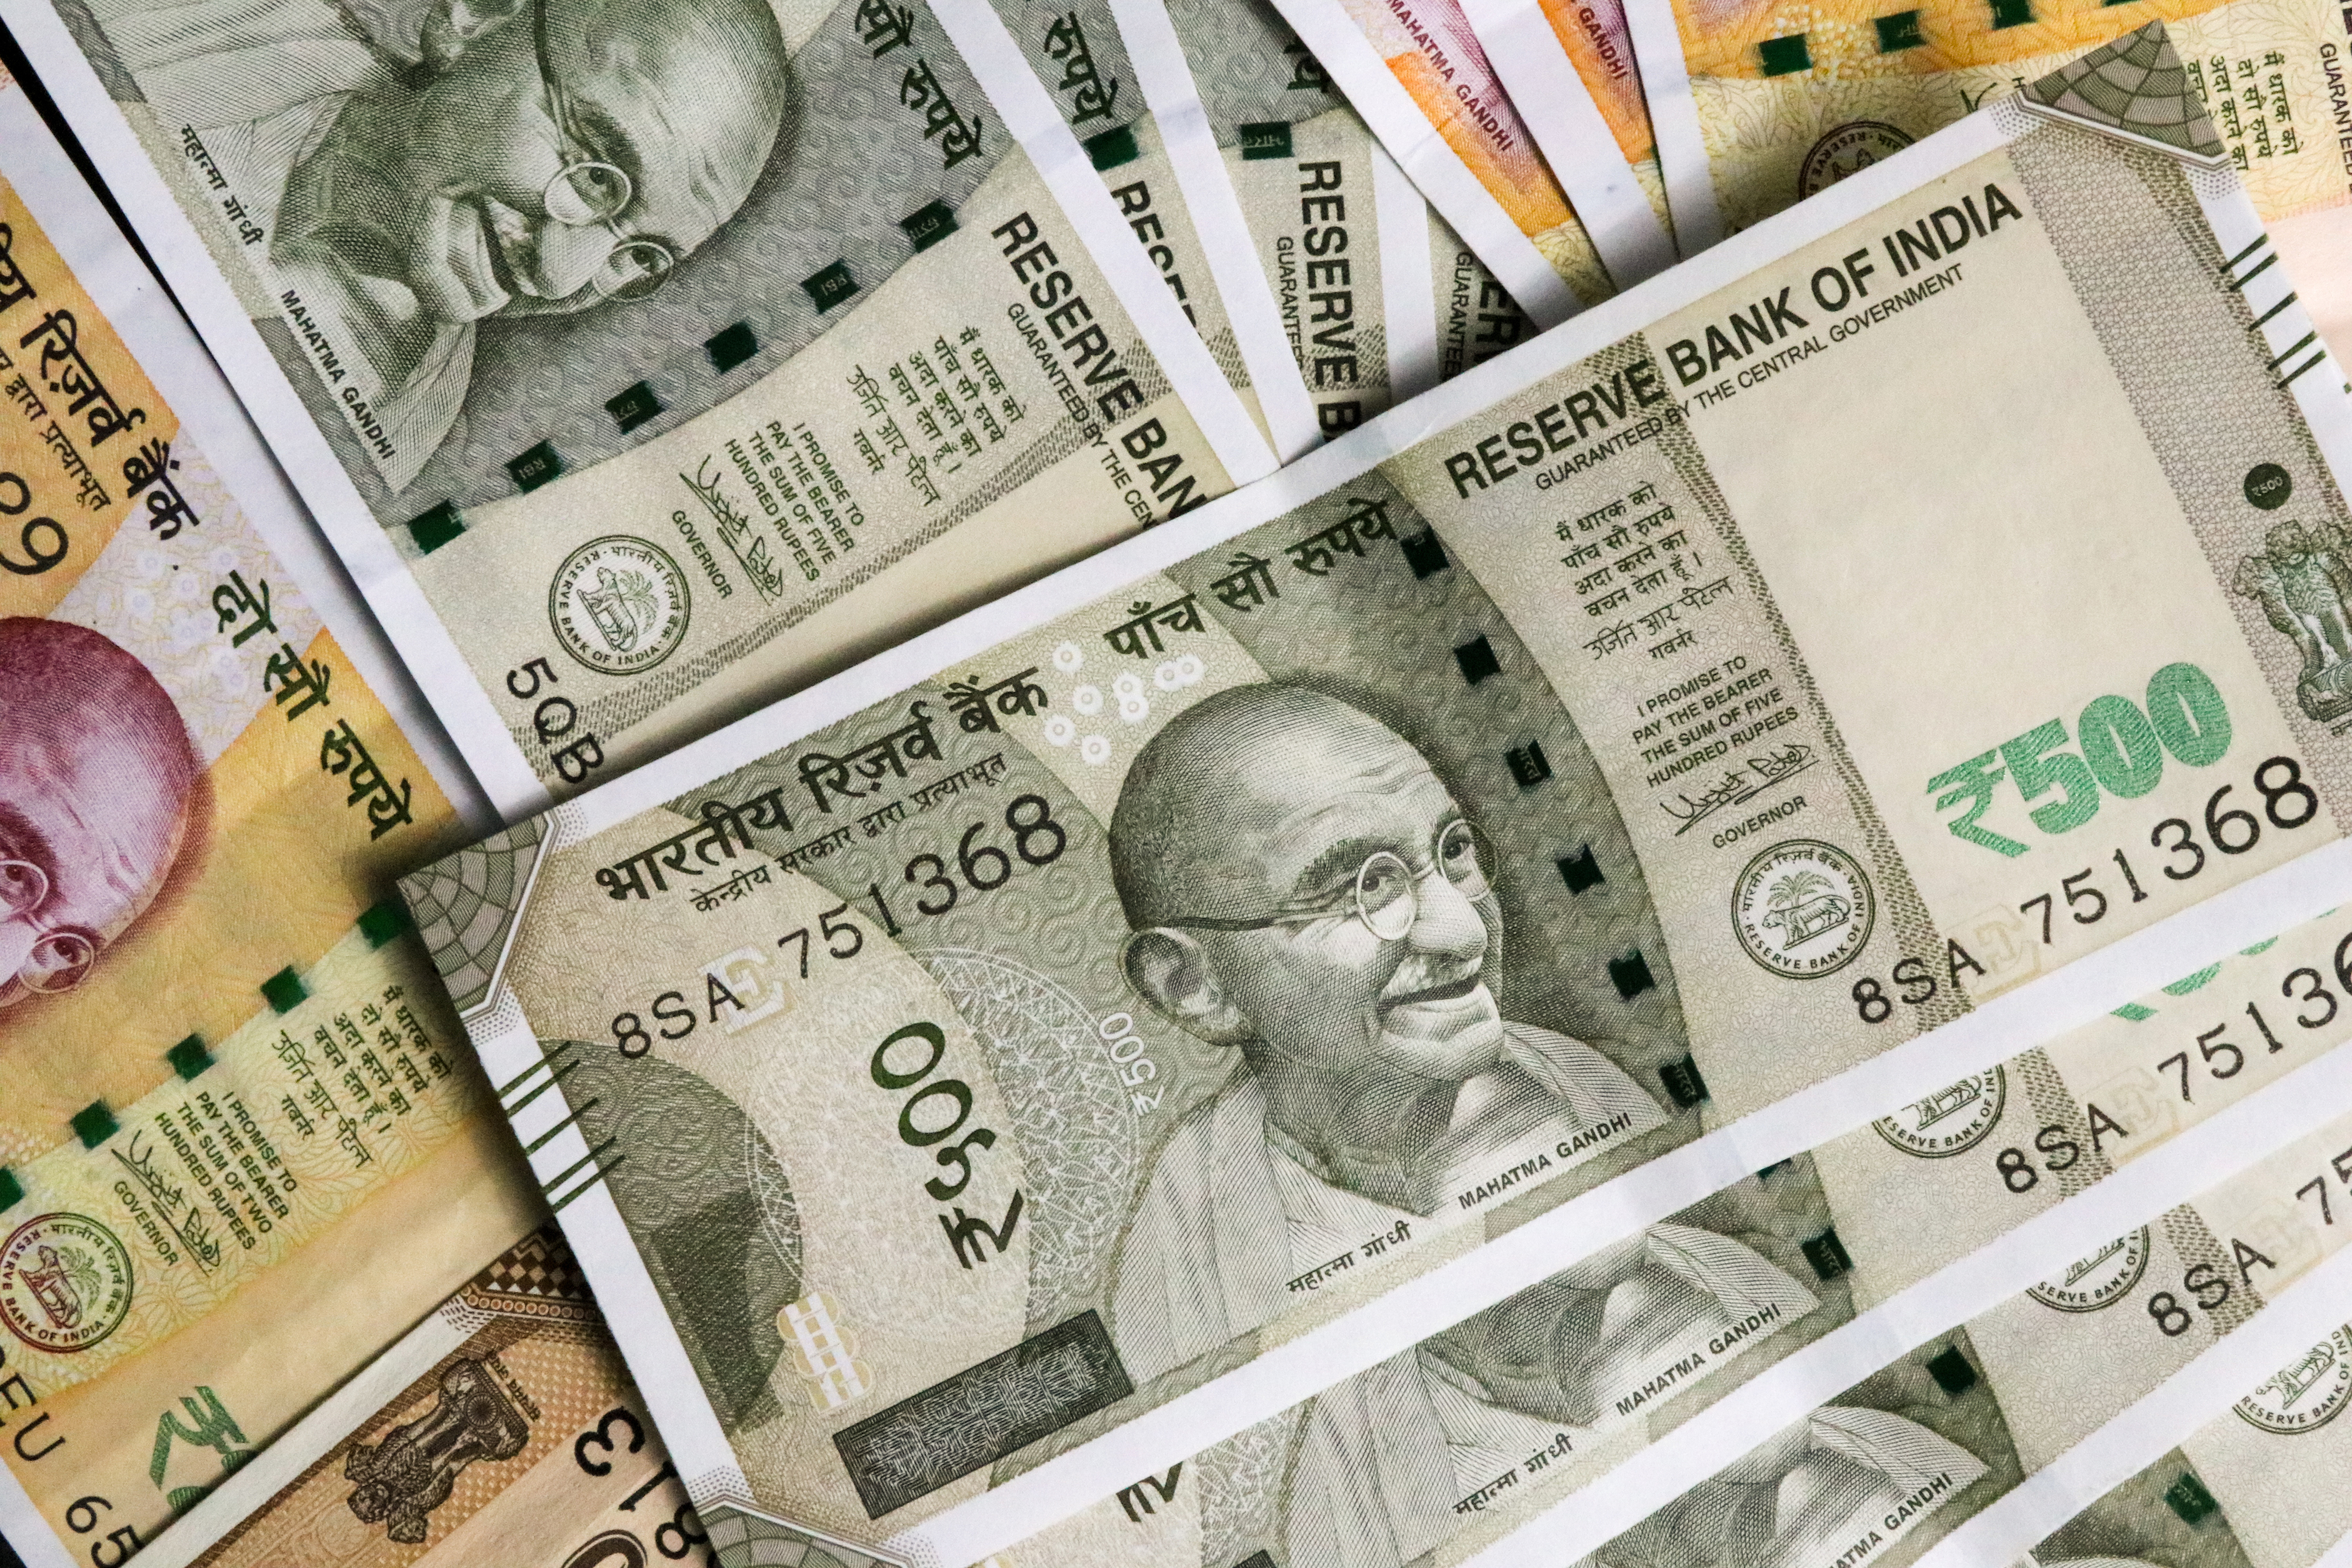 Indian currency.